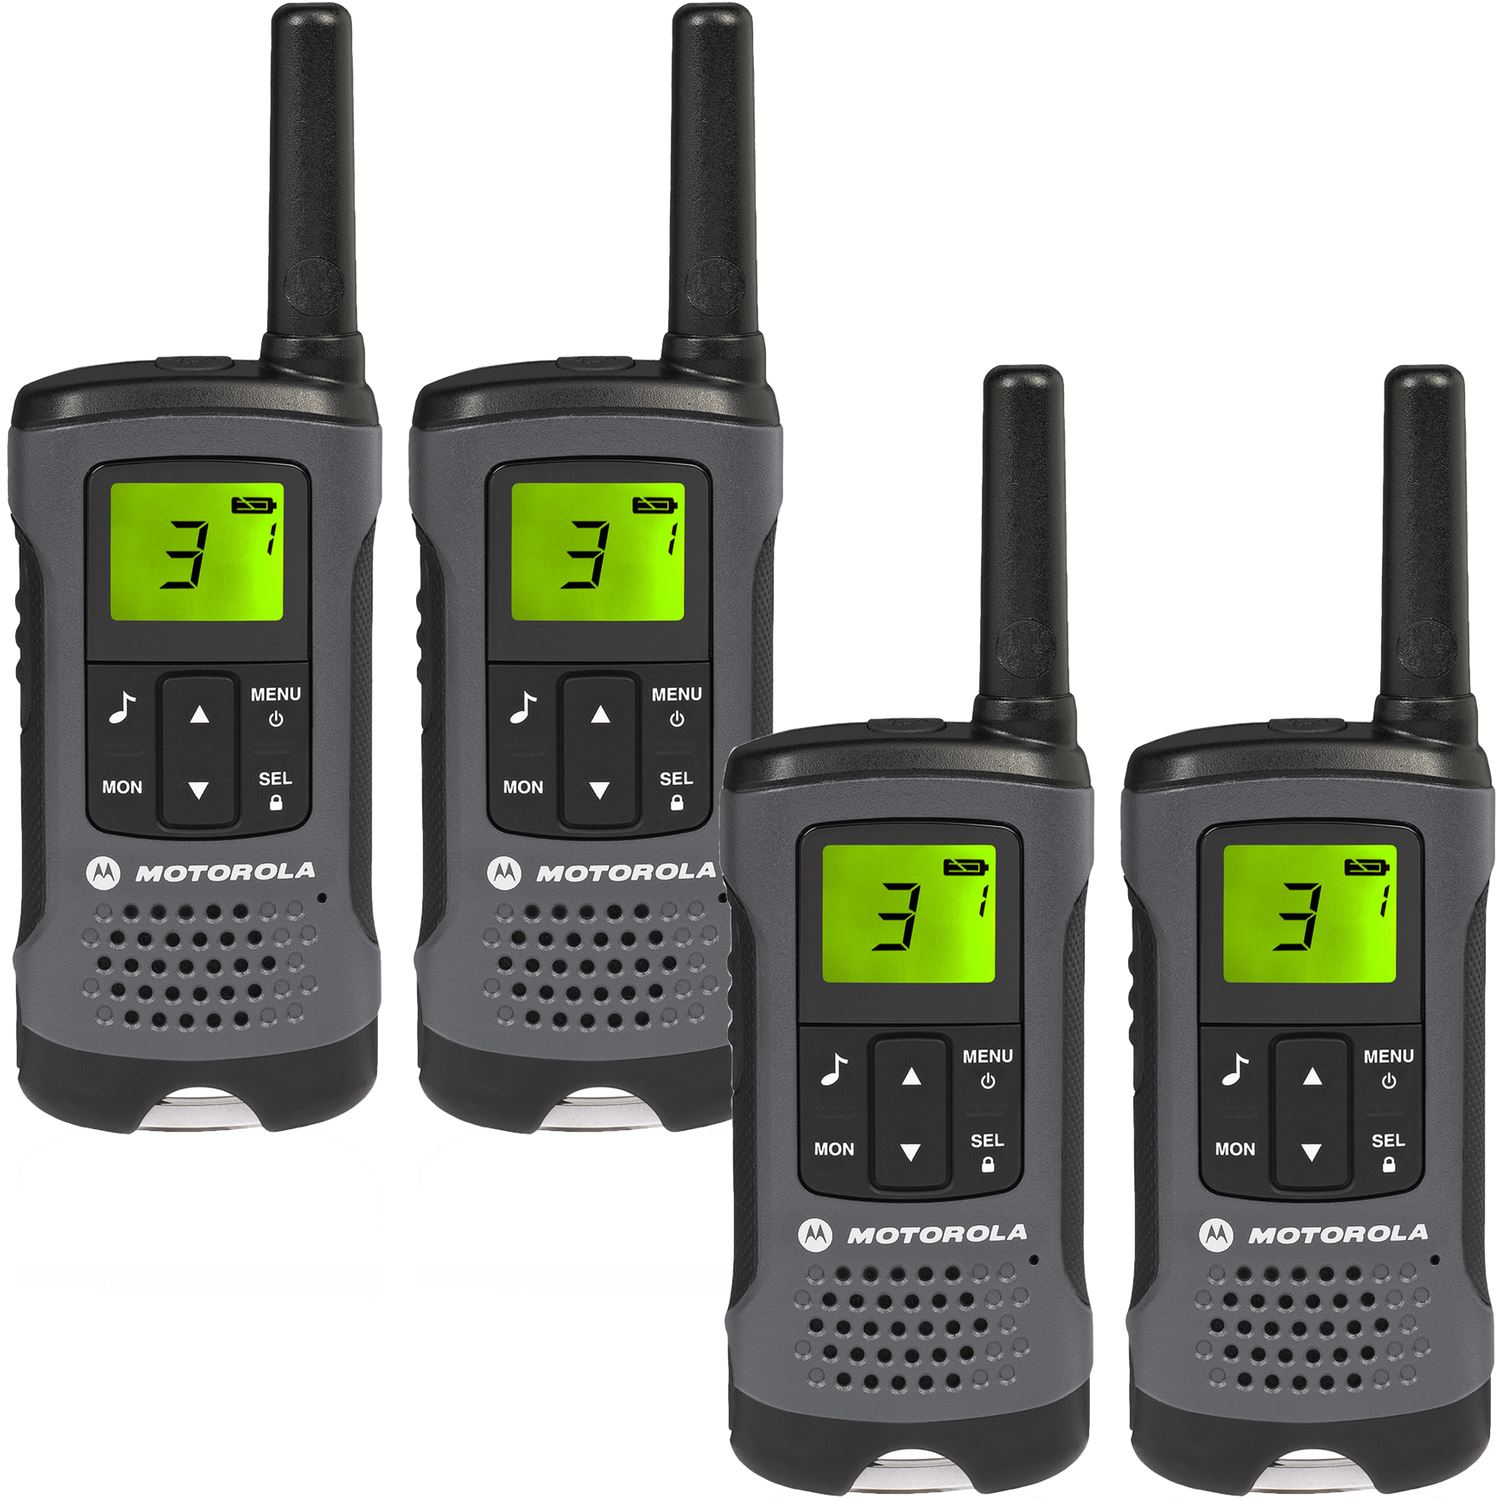 4 motorola tlkr t60z walkie talkie pmr446 rechargeable radio quad pack charger ebay. Black Bedroom Furniture Sets. Home Design Ideas